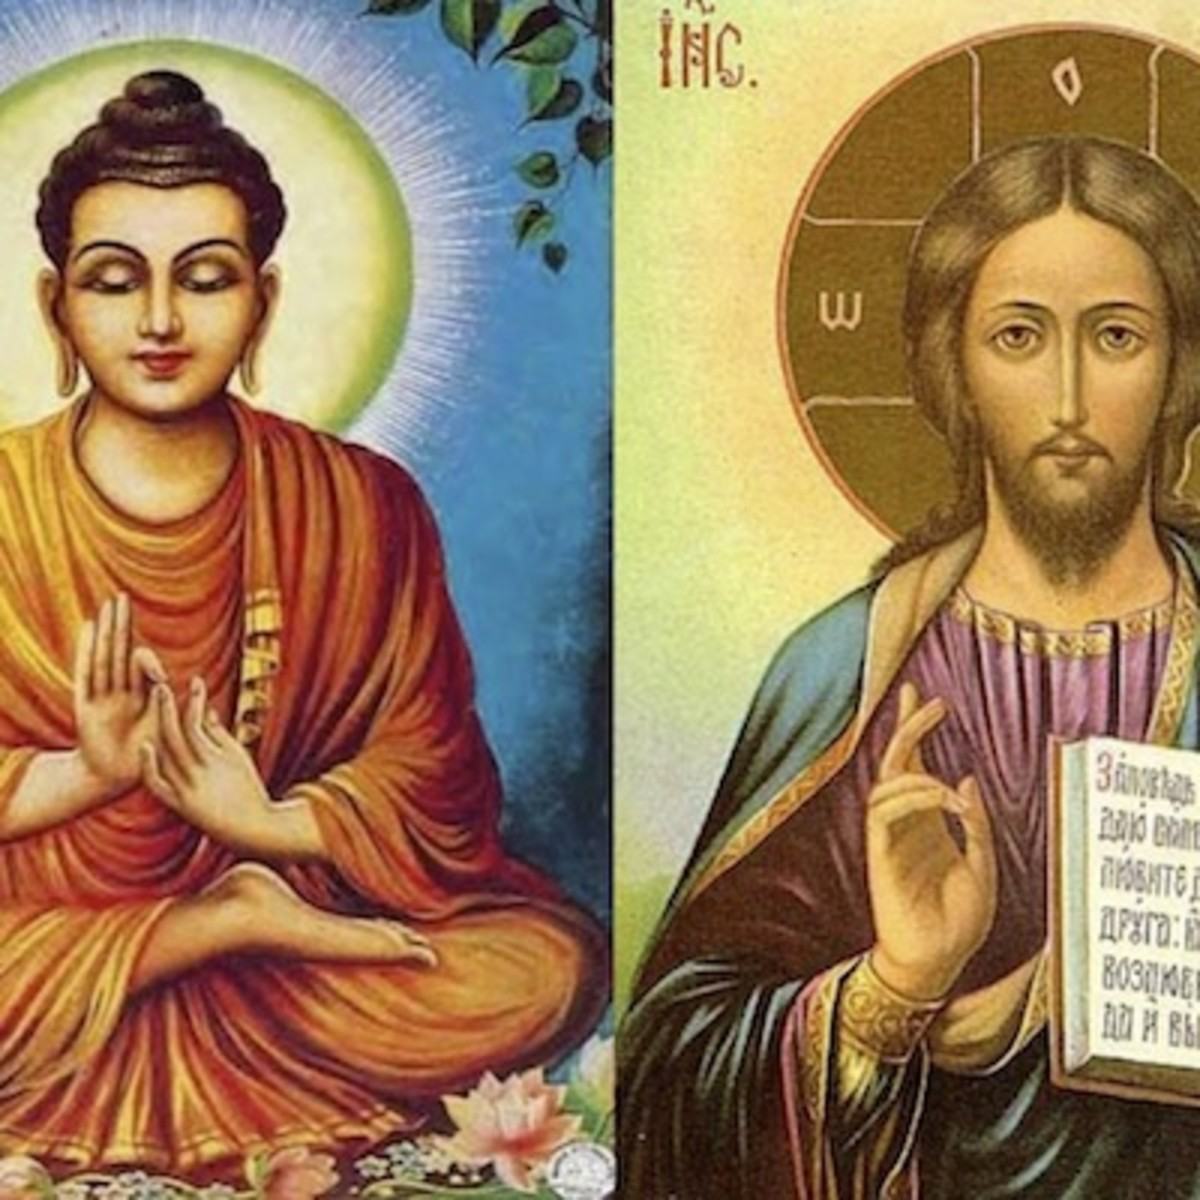 How Christ and Buhdda Do Not Have to Be Seperated but Understood as Being on the Same Path of Self-Realization